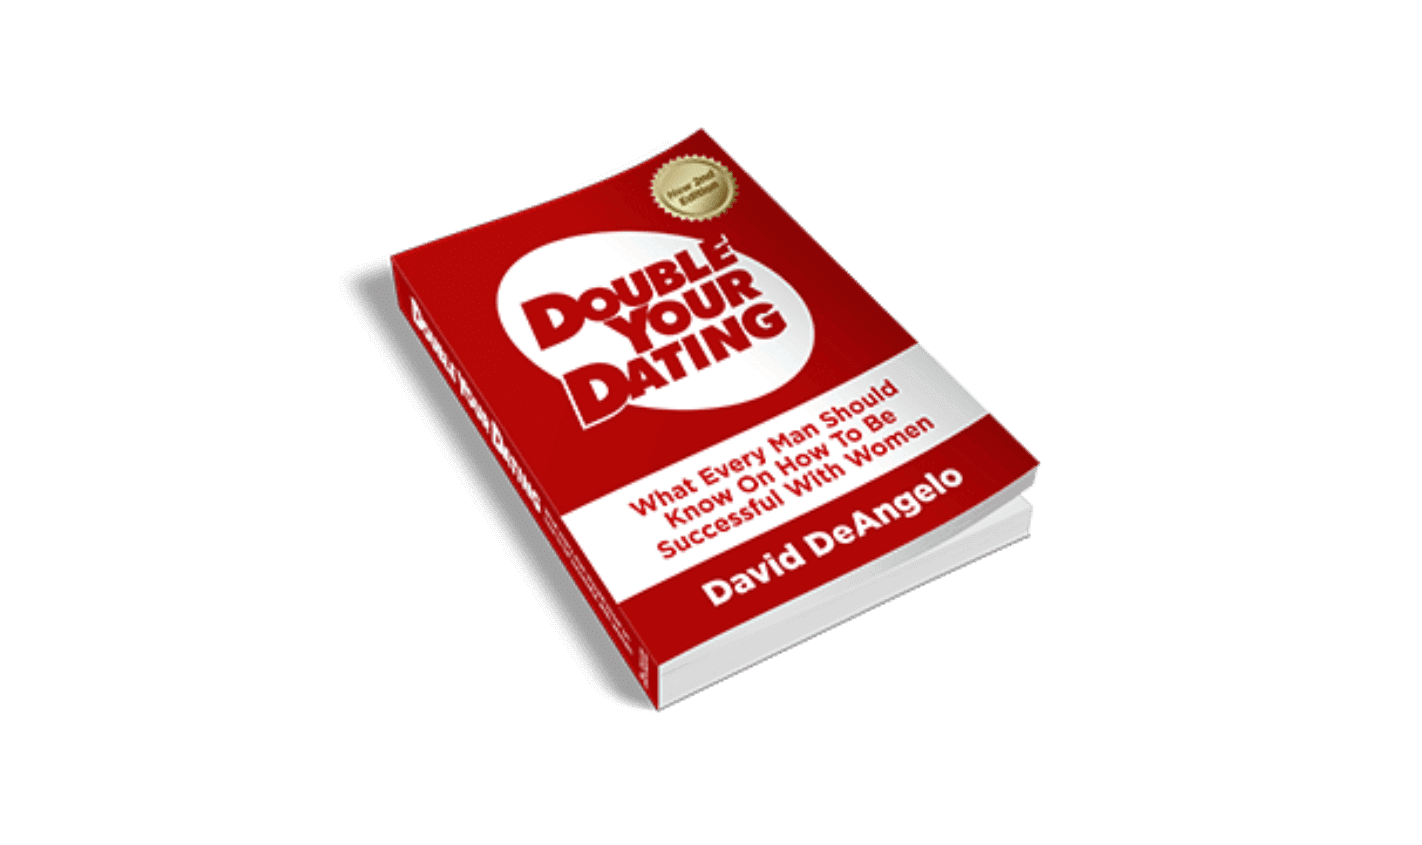 Double Your Dating the book